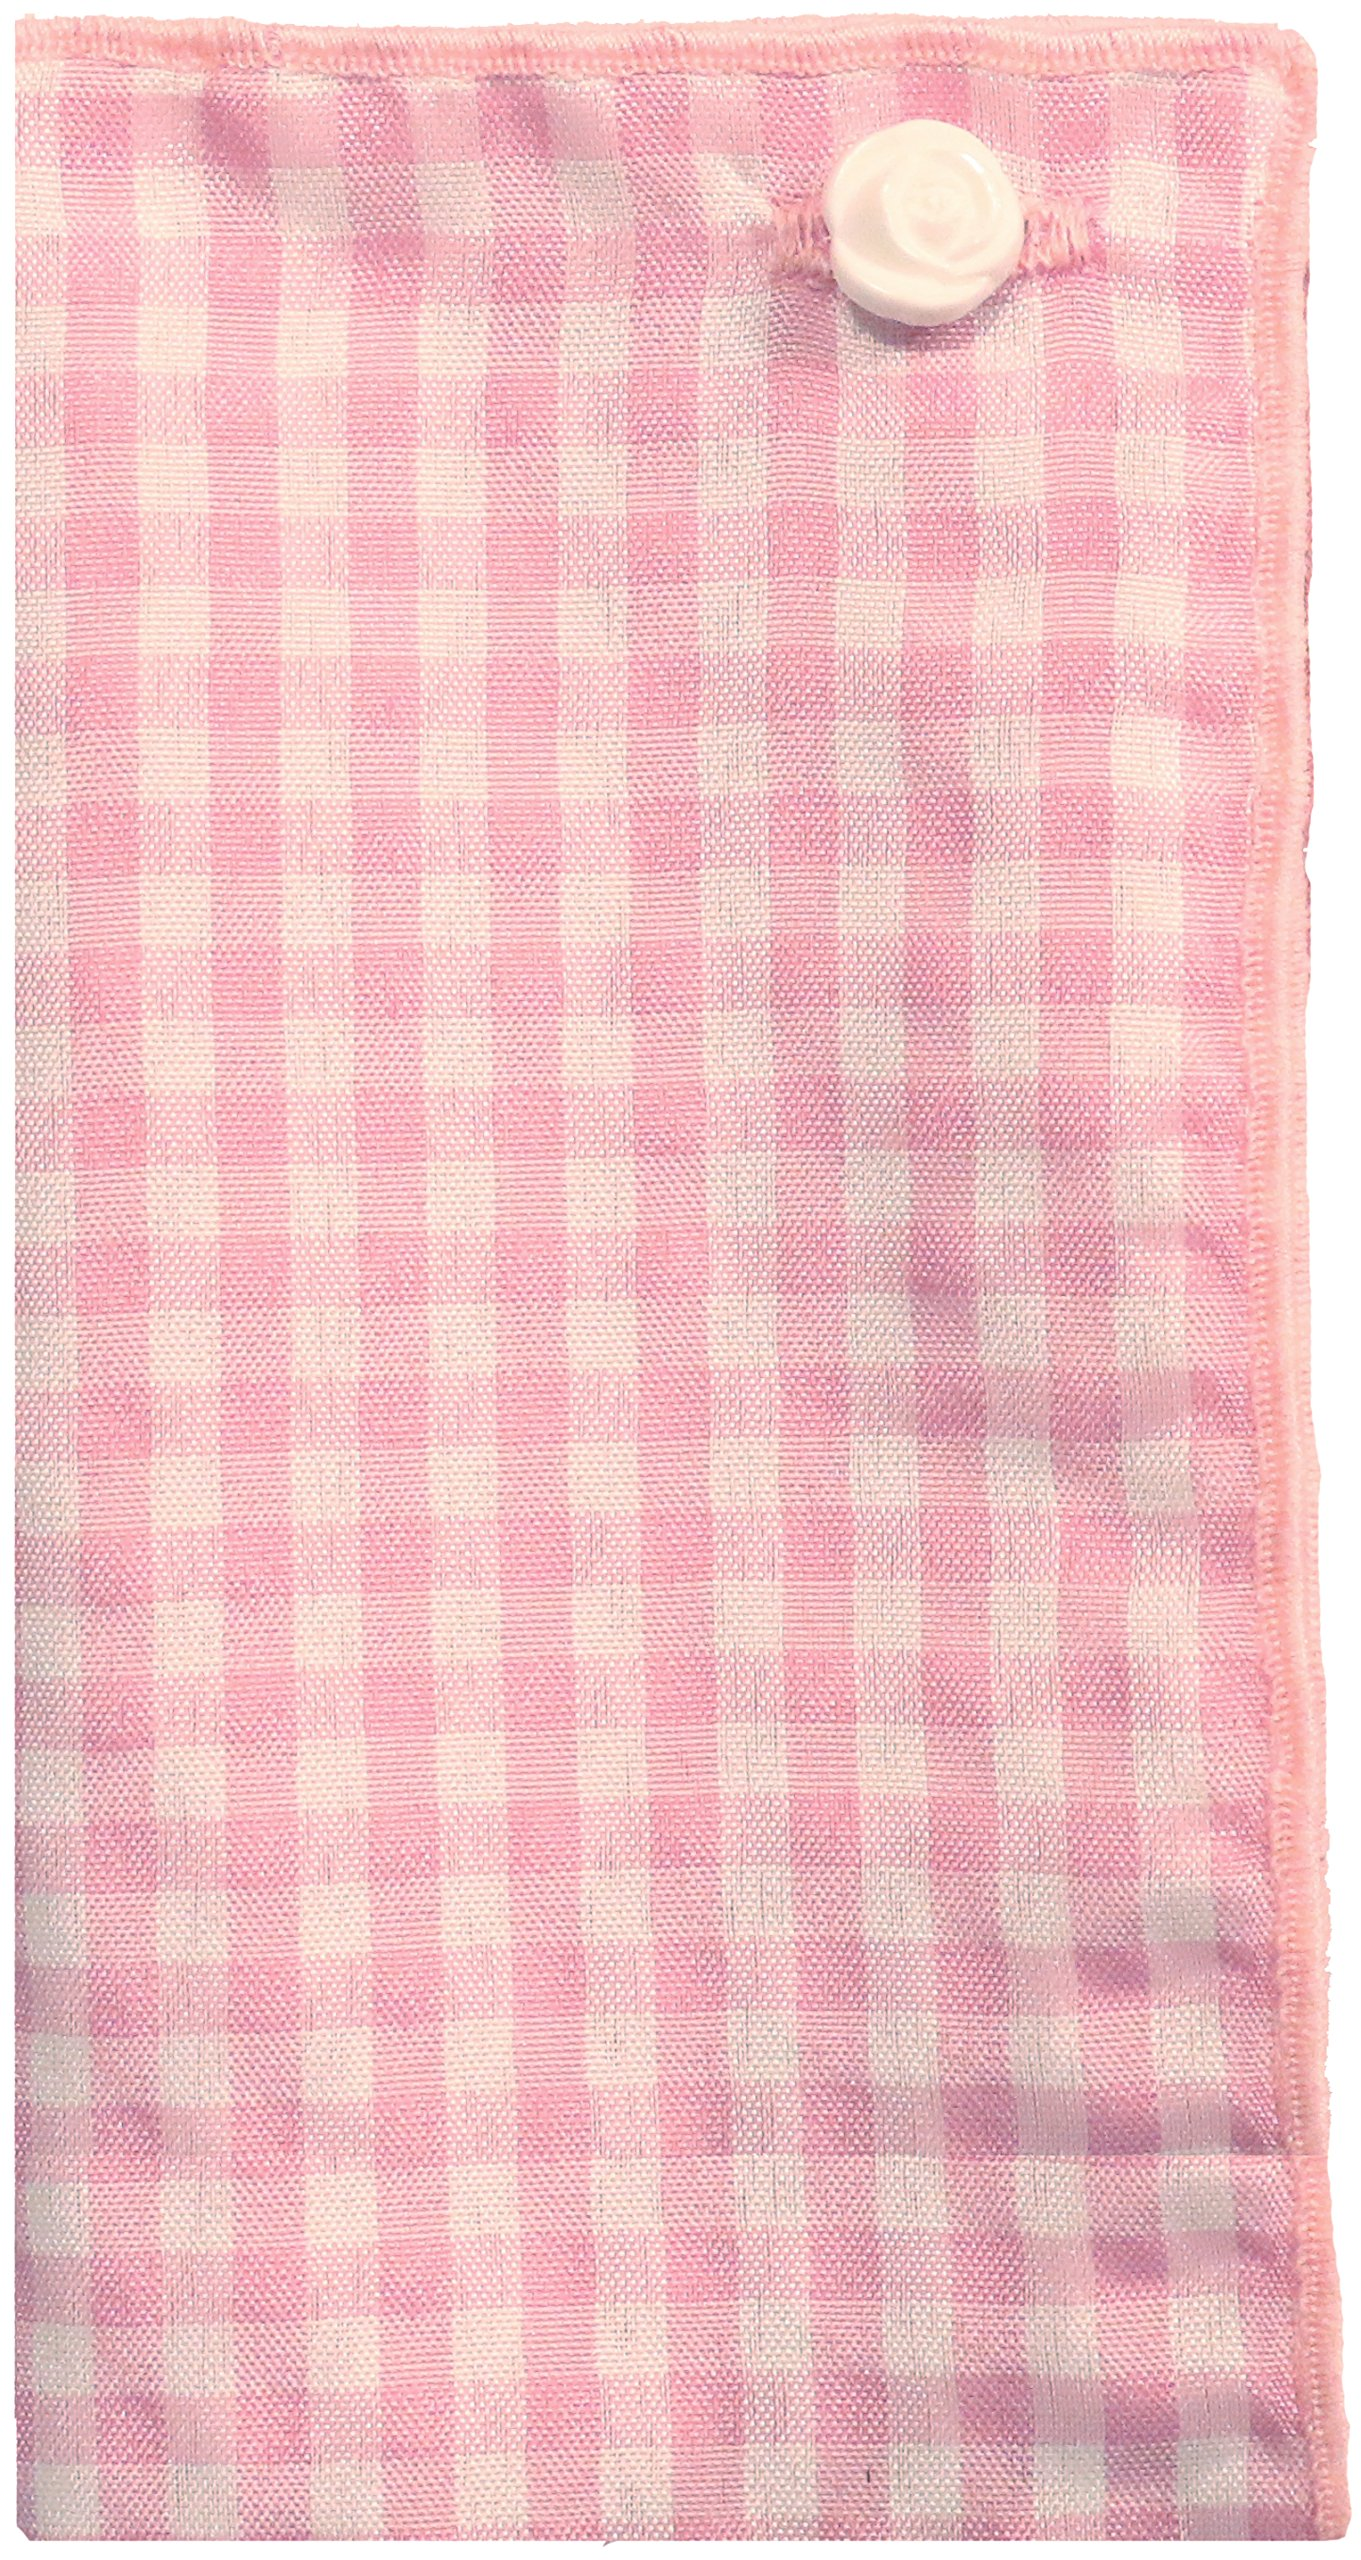 Light Pink & White Check w/ White Button Men's Pocket Square by The Detailed Male